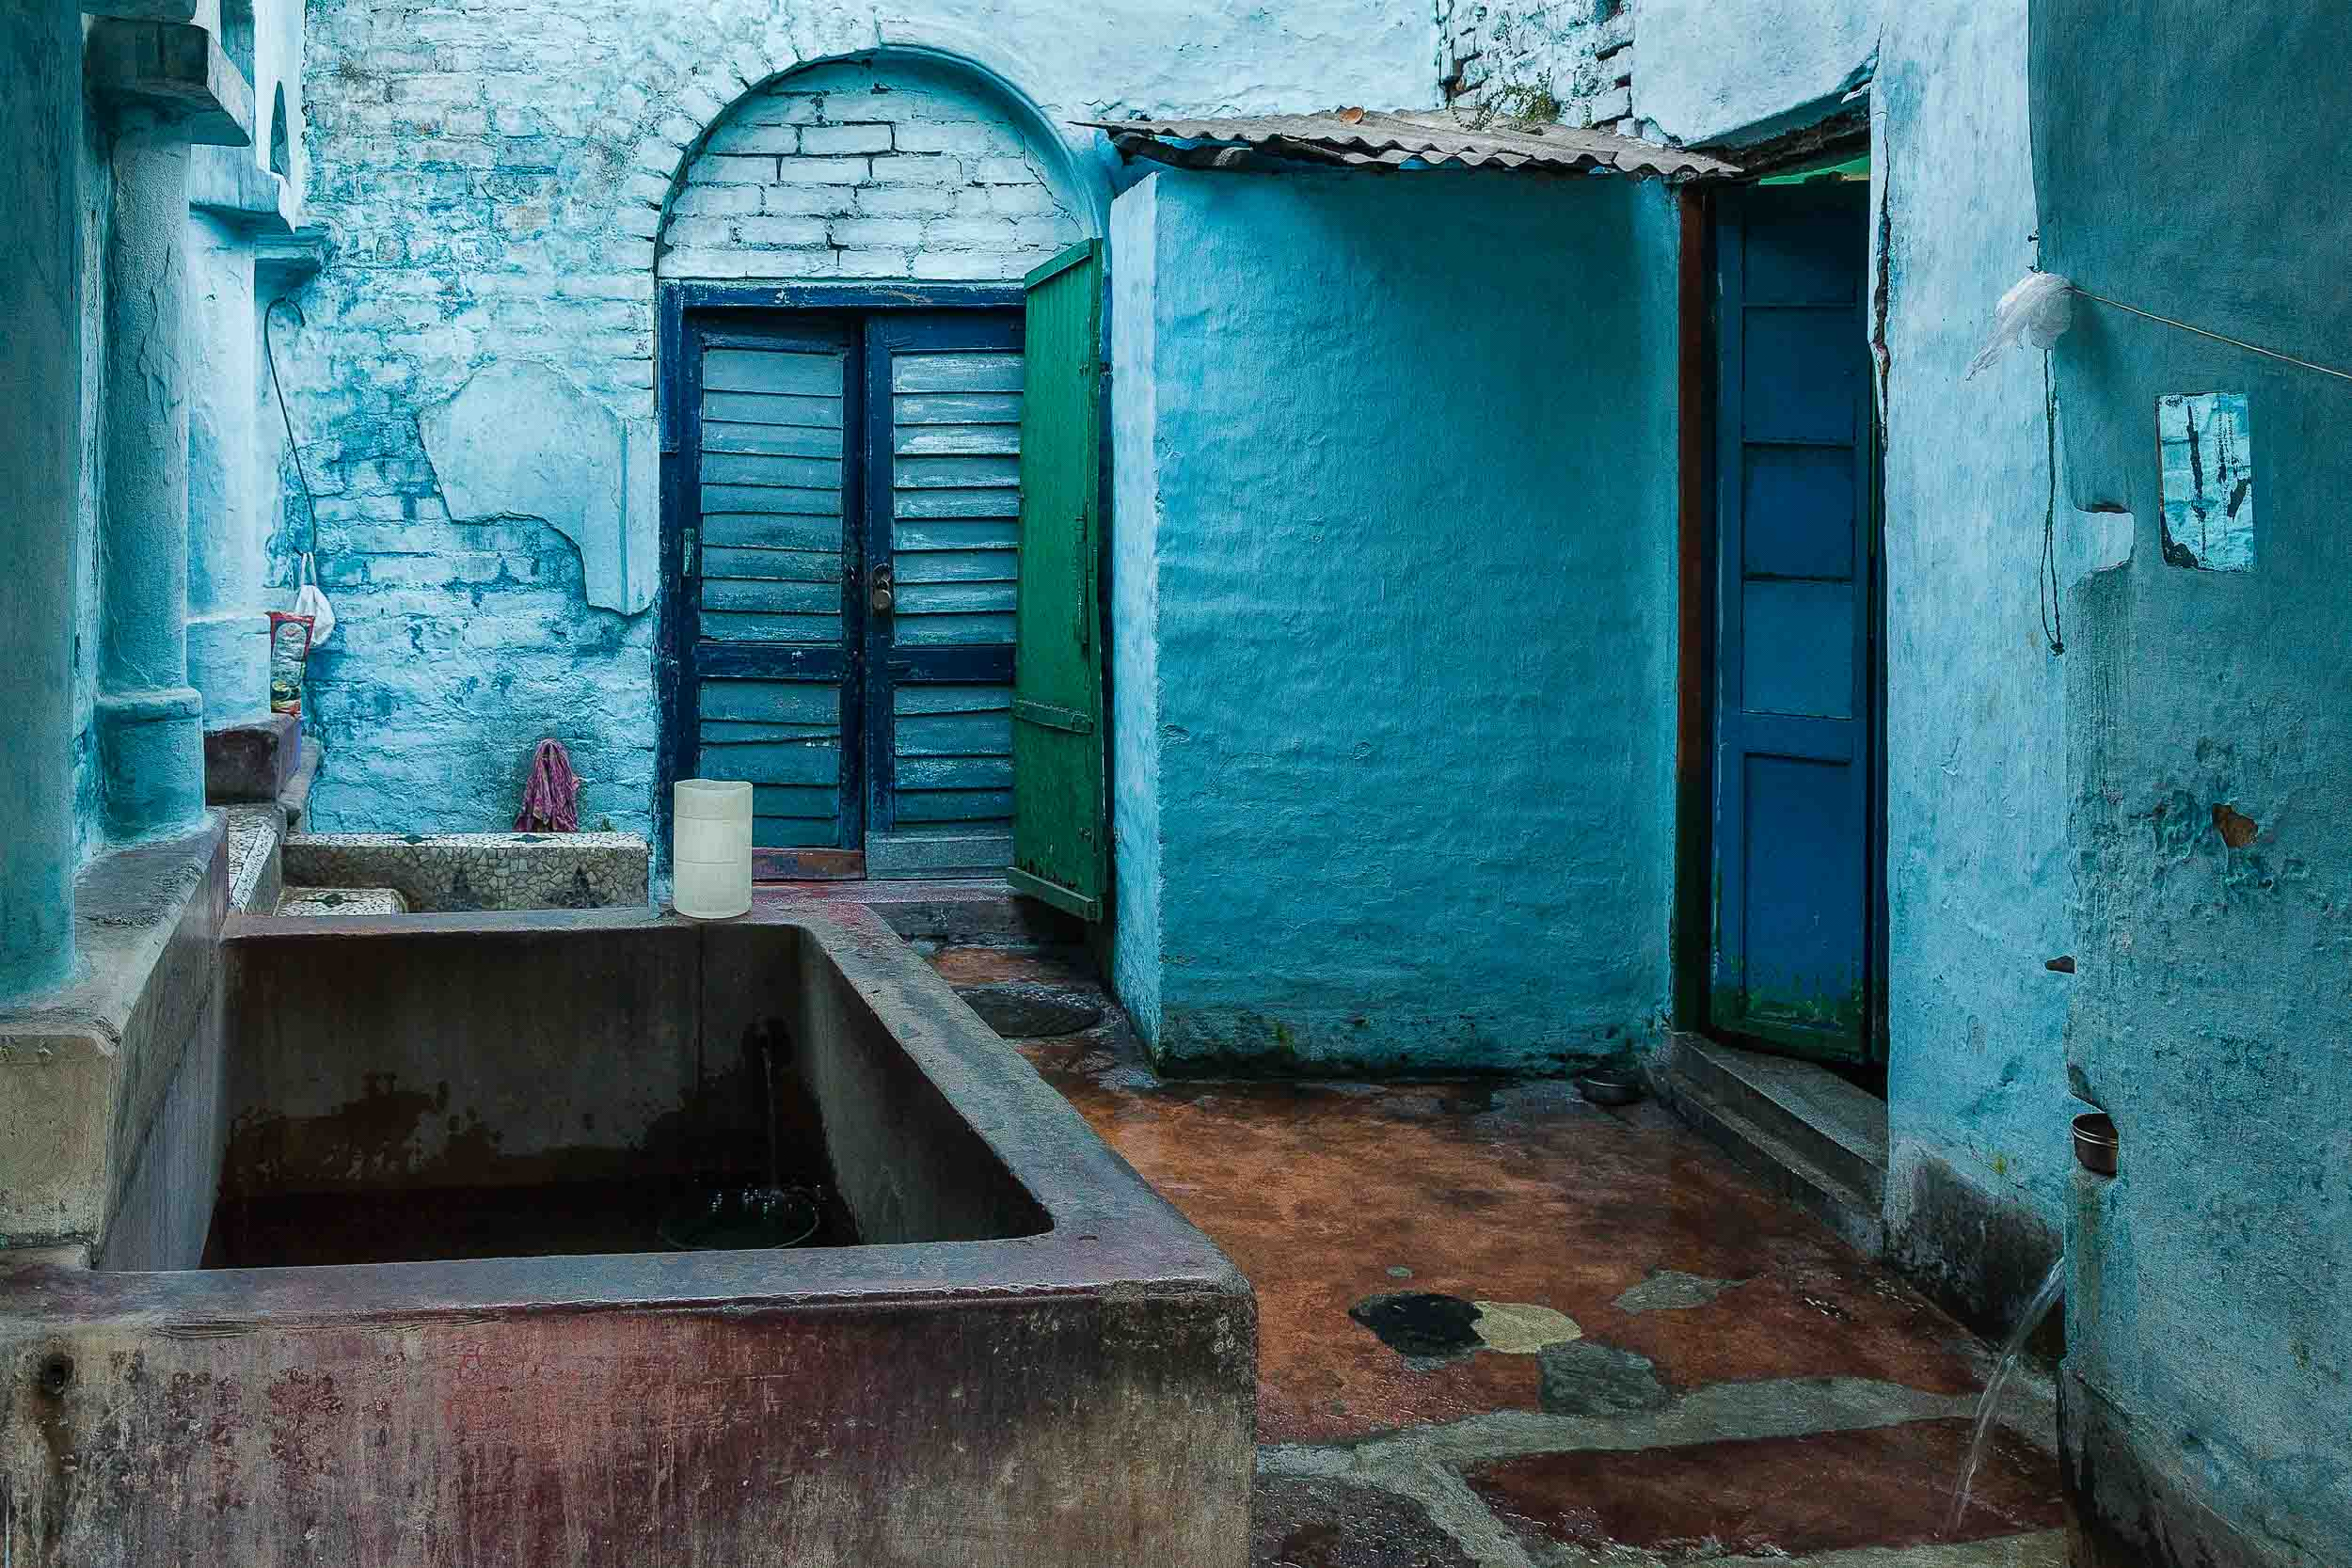 The colors    blue and aqua    dominate this    household courtyard    in    Kolkata, India   .